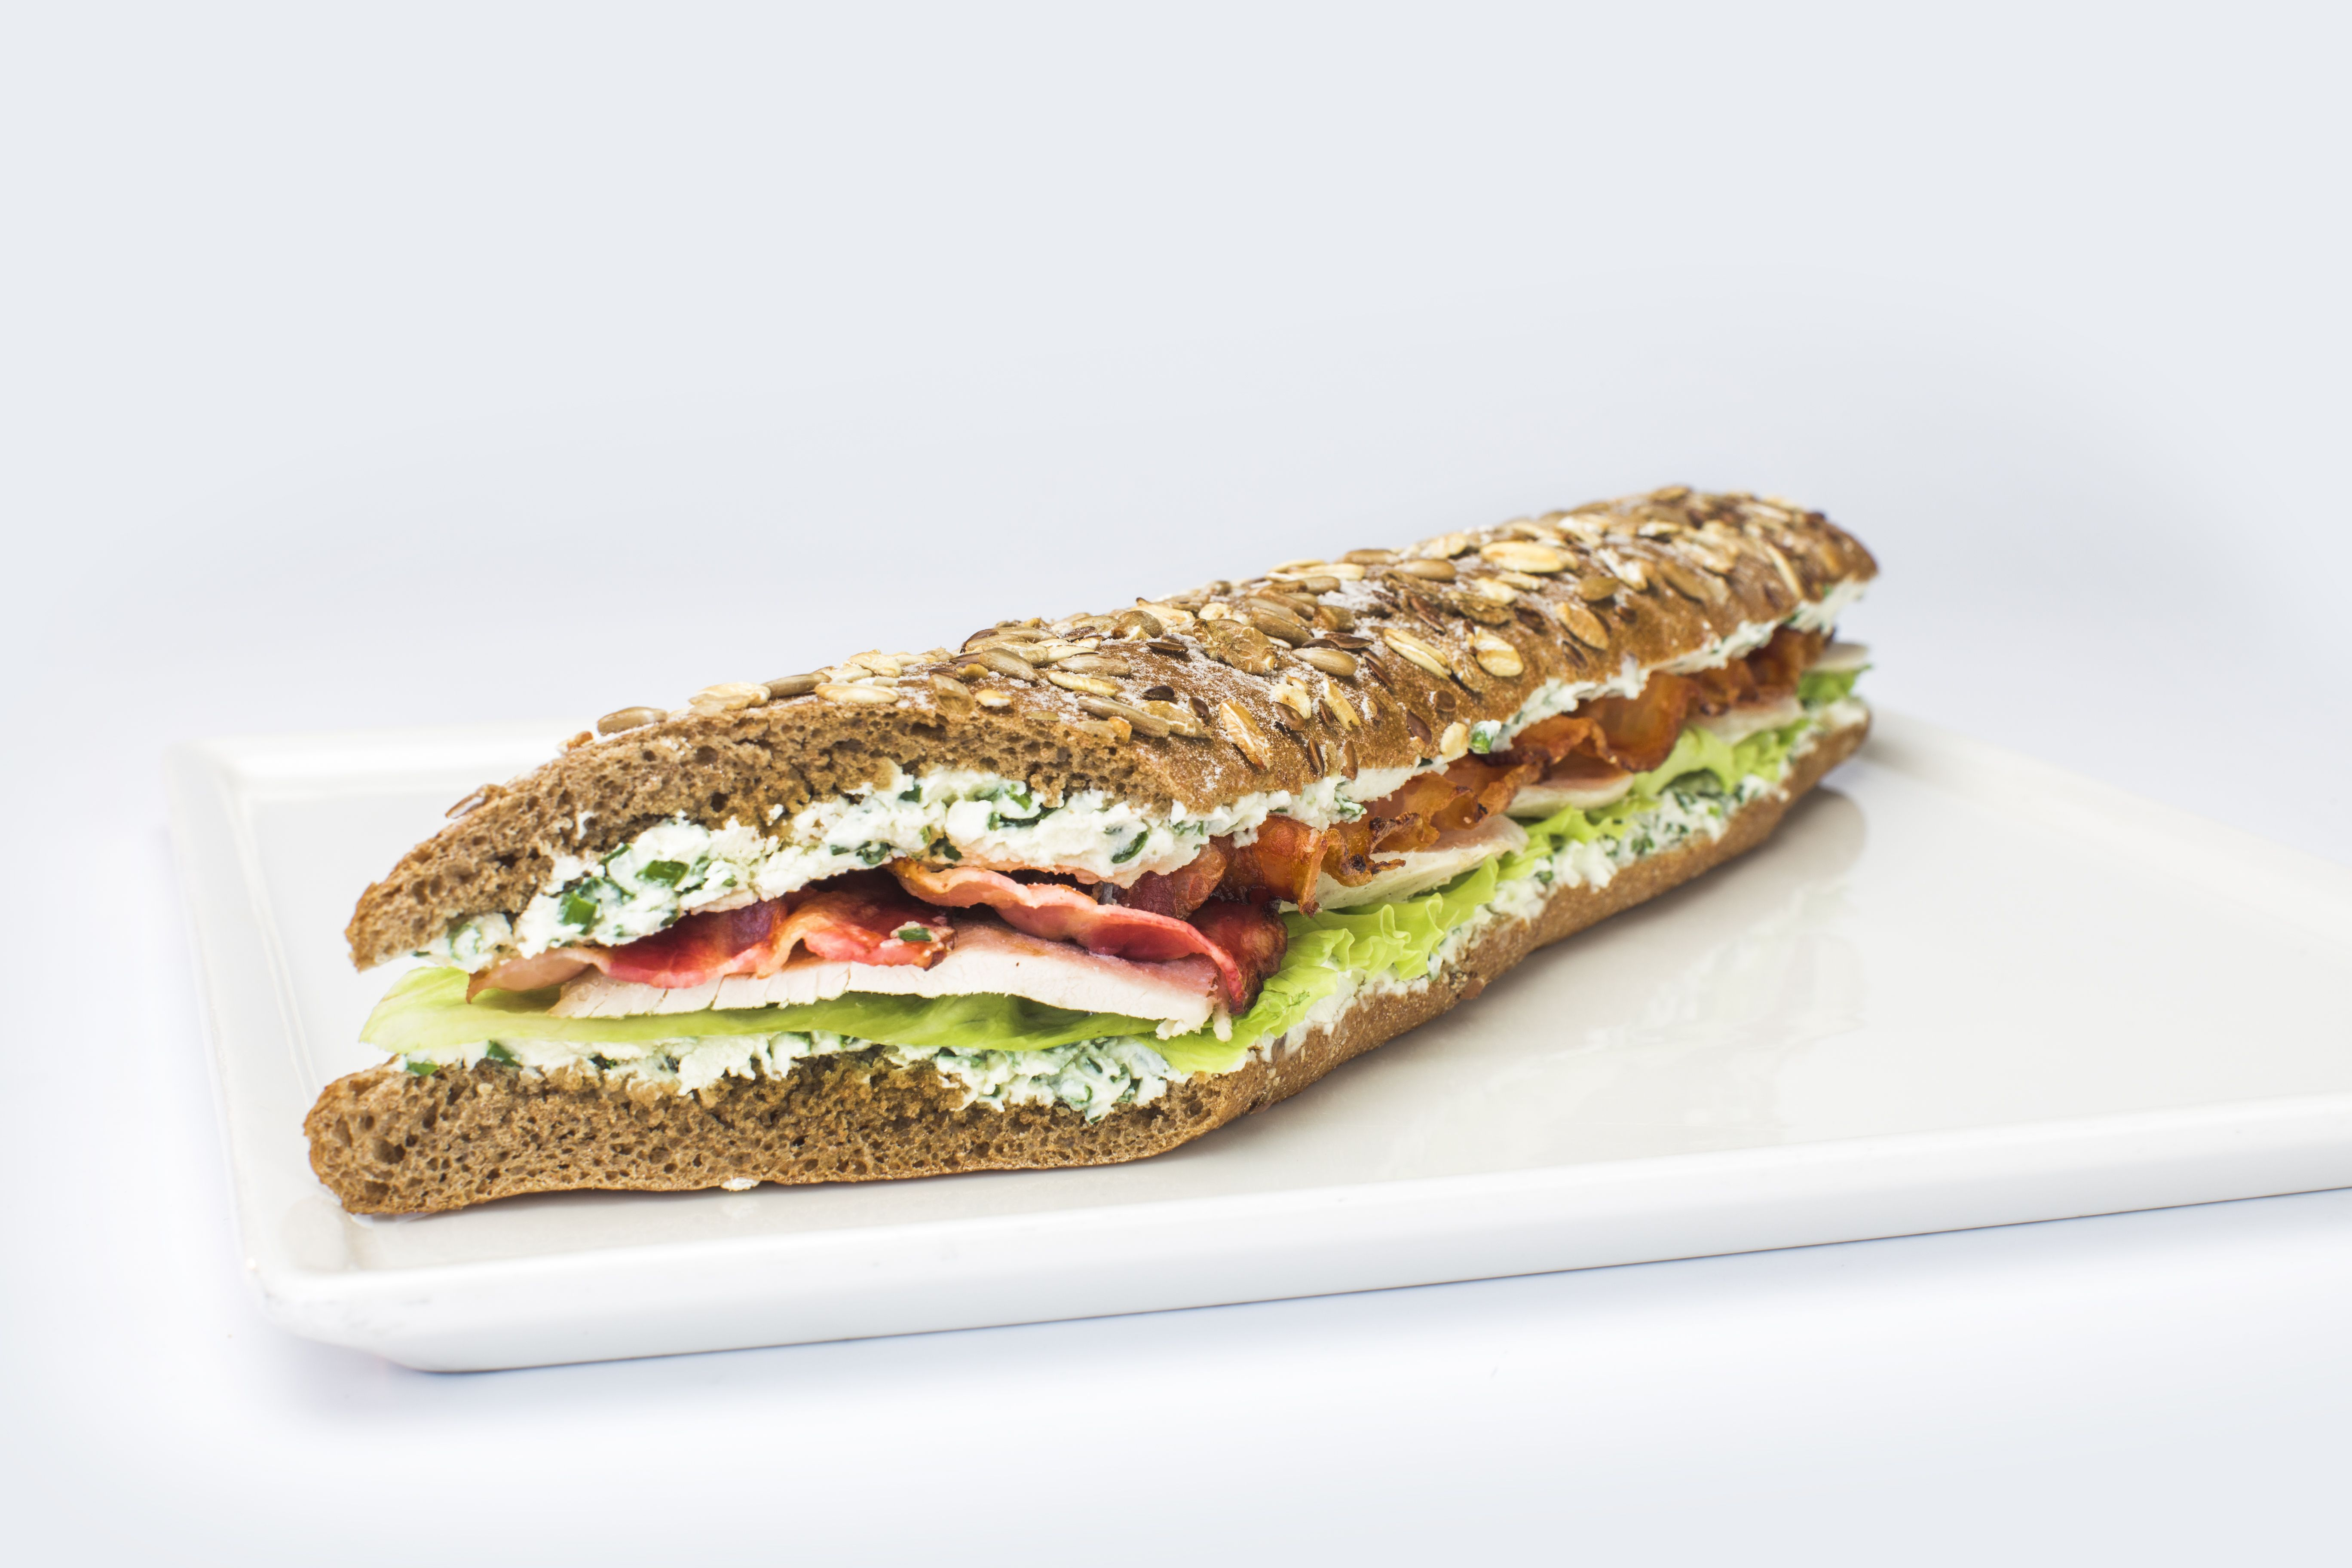 TURKEY AND CRISPY PANCETTA BAGUETTE - Whole wheat baguette, turkey breast in vacuum with bouquet garni, oven baked crispy pancetta, cream cheese with chives and iceberg salad.